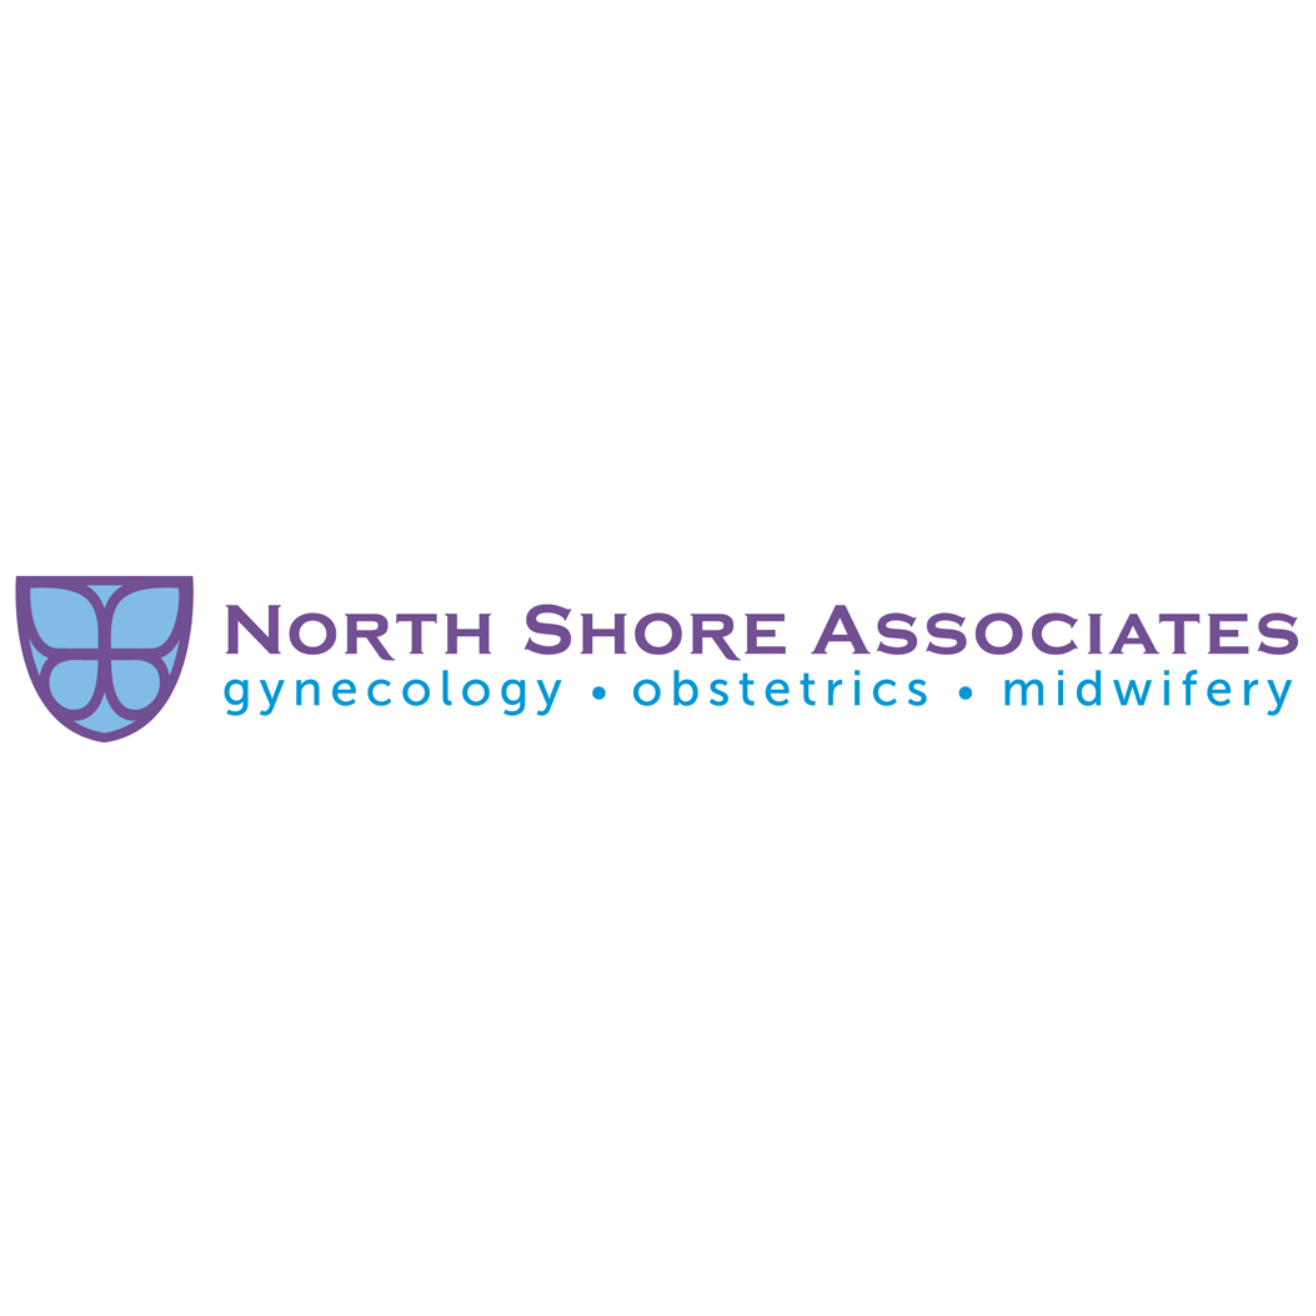 North Shore Associates in Gynecology and Obstetrics